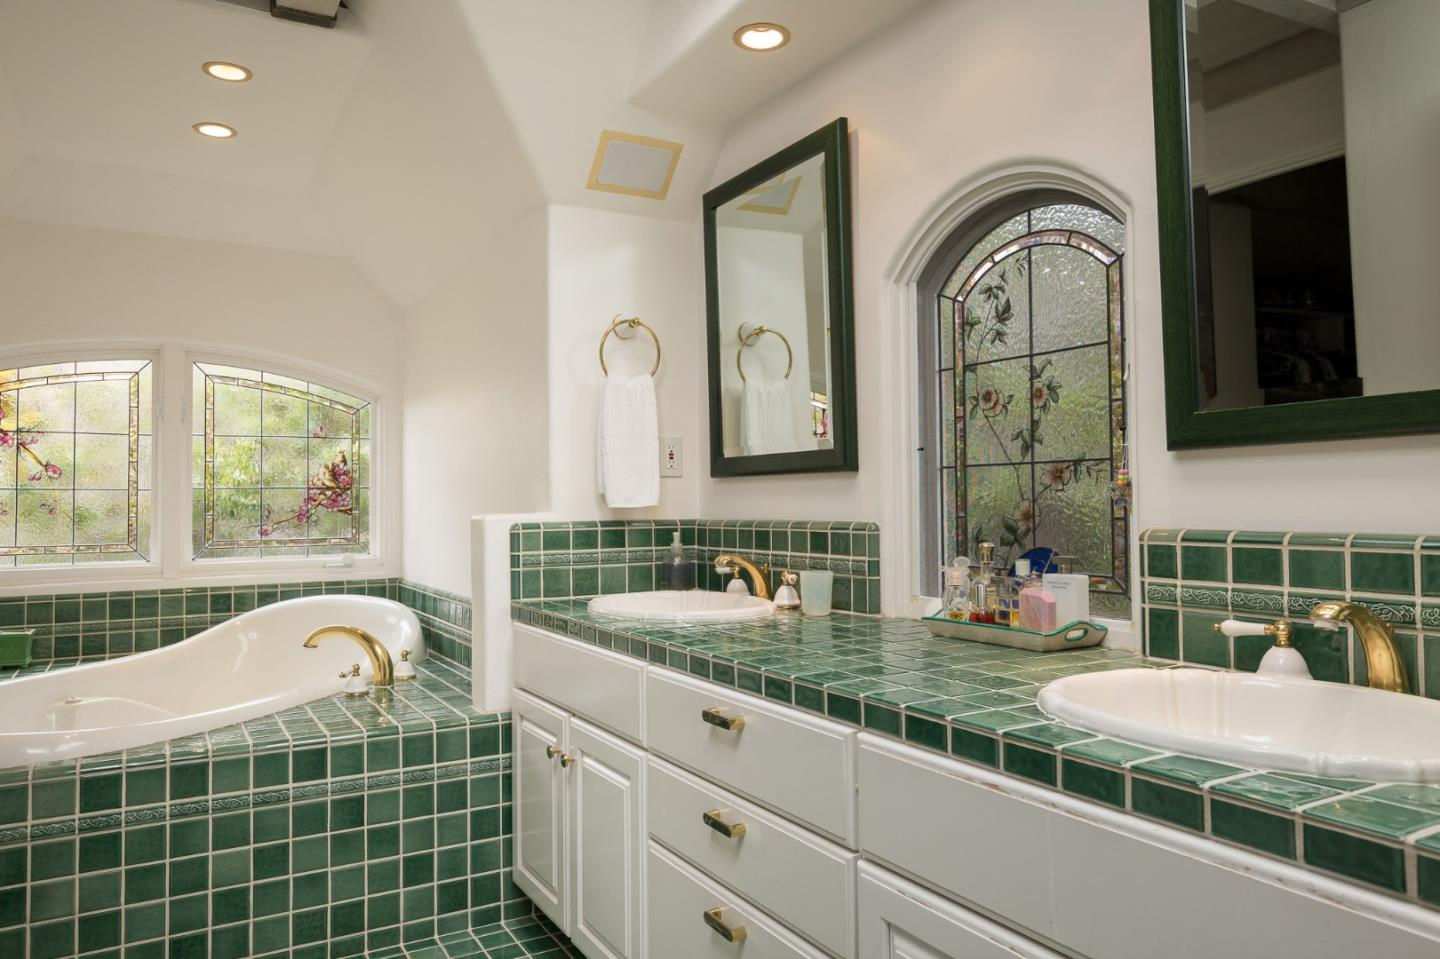 Storybook cottage in Carmel Ca for sale - 2nd bathroom